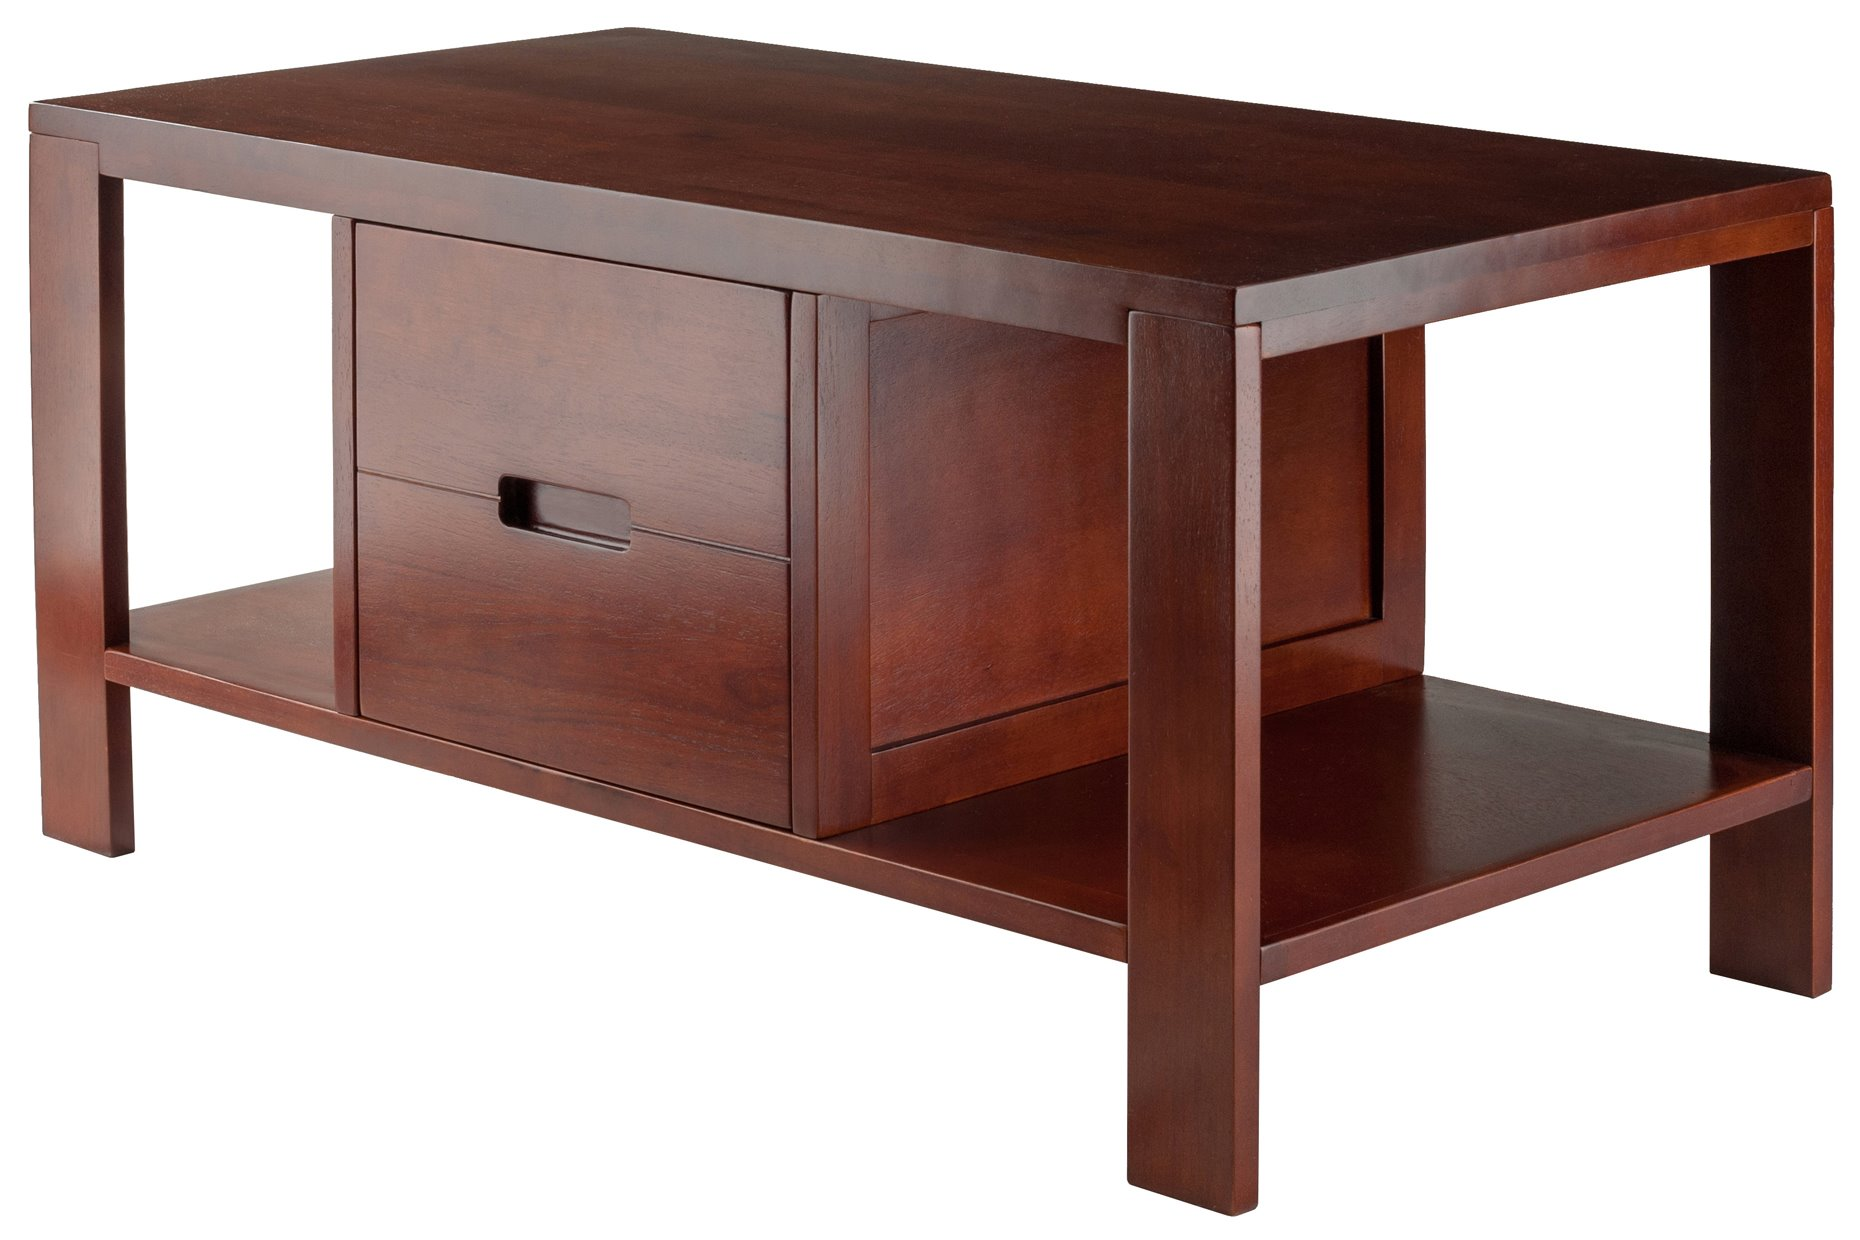 winsome wood bora transitional accent table winw see details brown leather chair black and white bedside lamps scandinavian side drawers college essentials vanity unit with basin